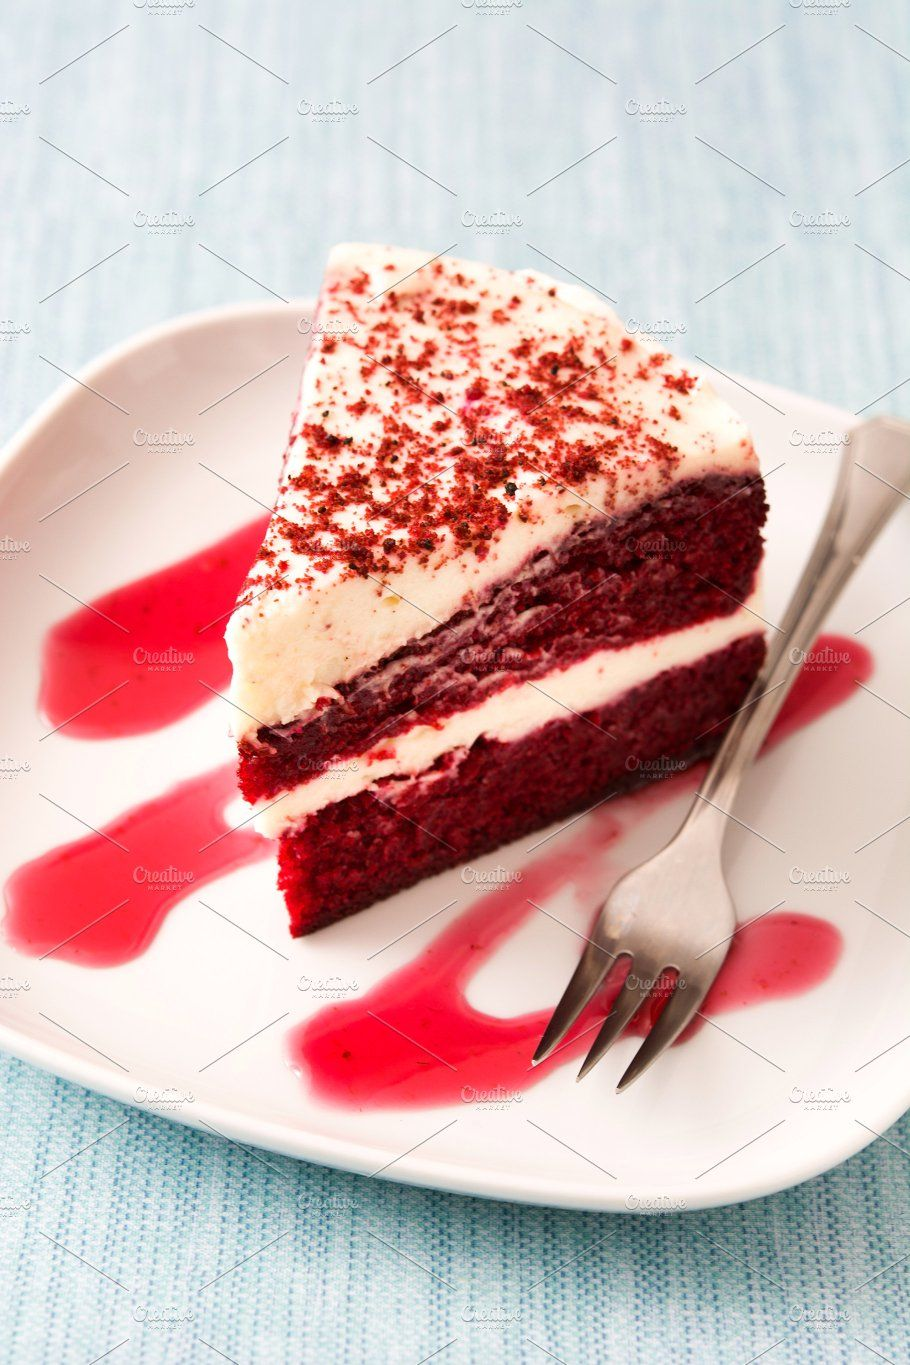 Red Velvet Cake Slice With Images Food Photography Cake Red